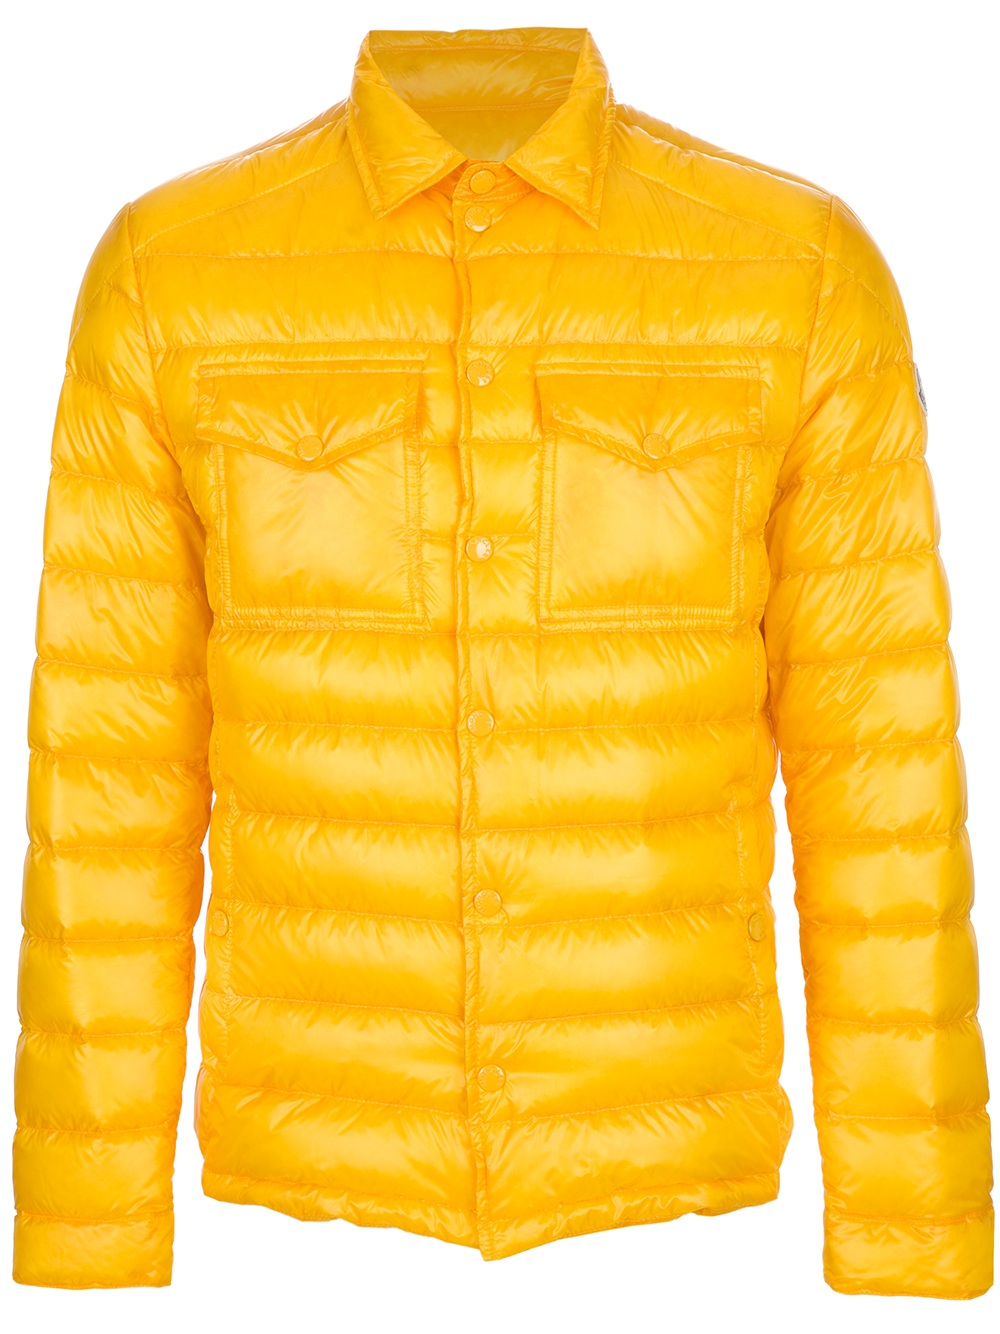 68bfd06c310 moncler Bikers YELLOW